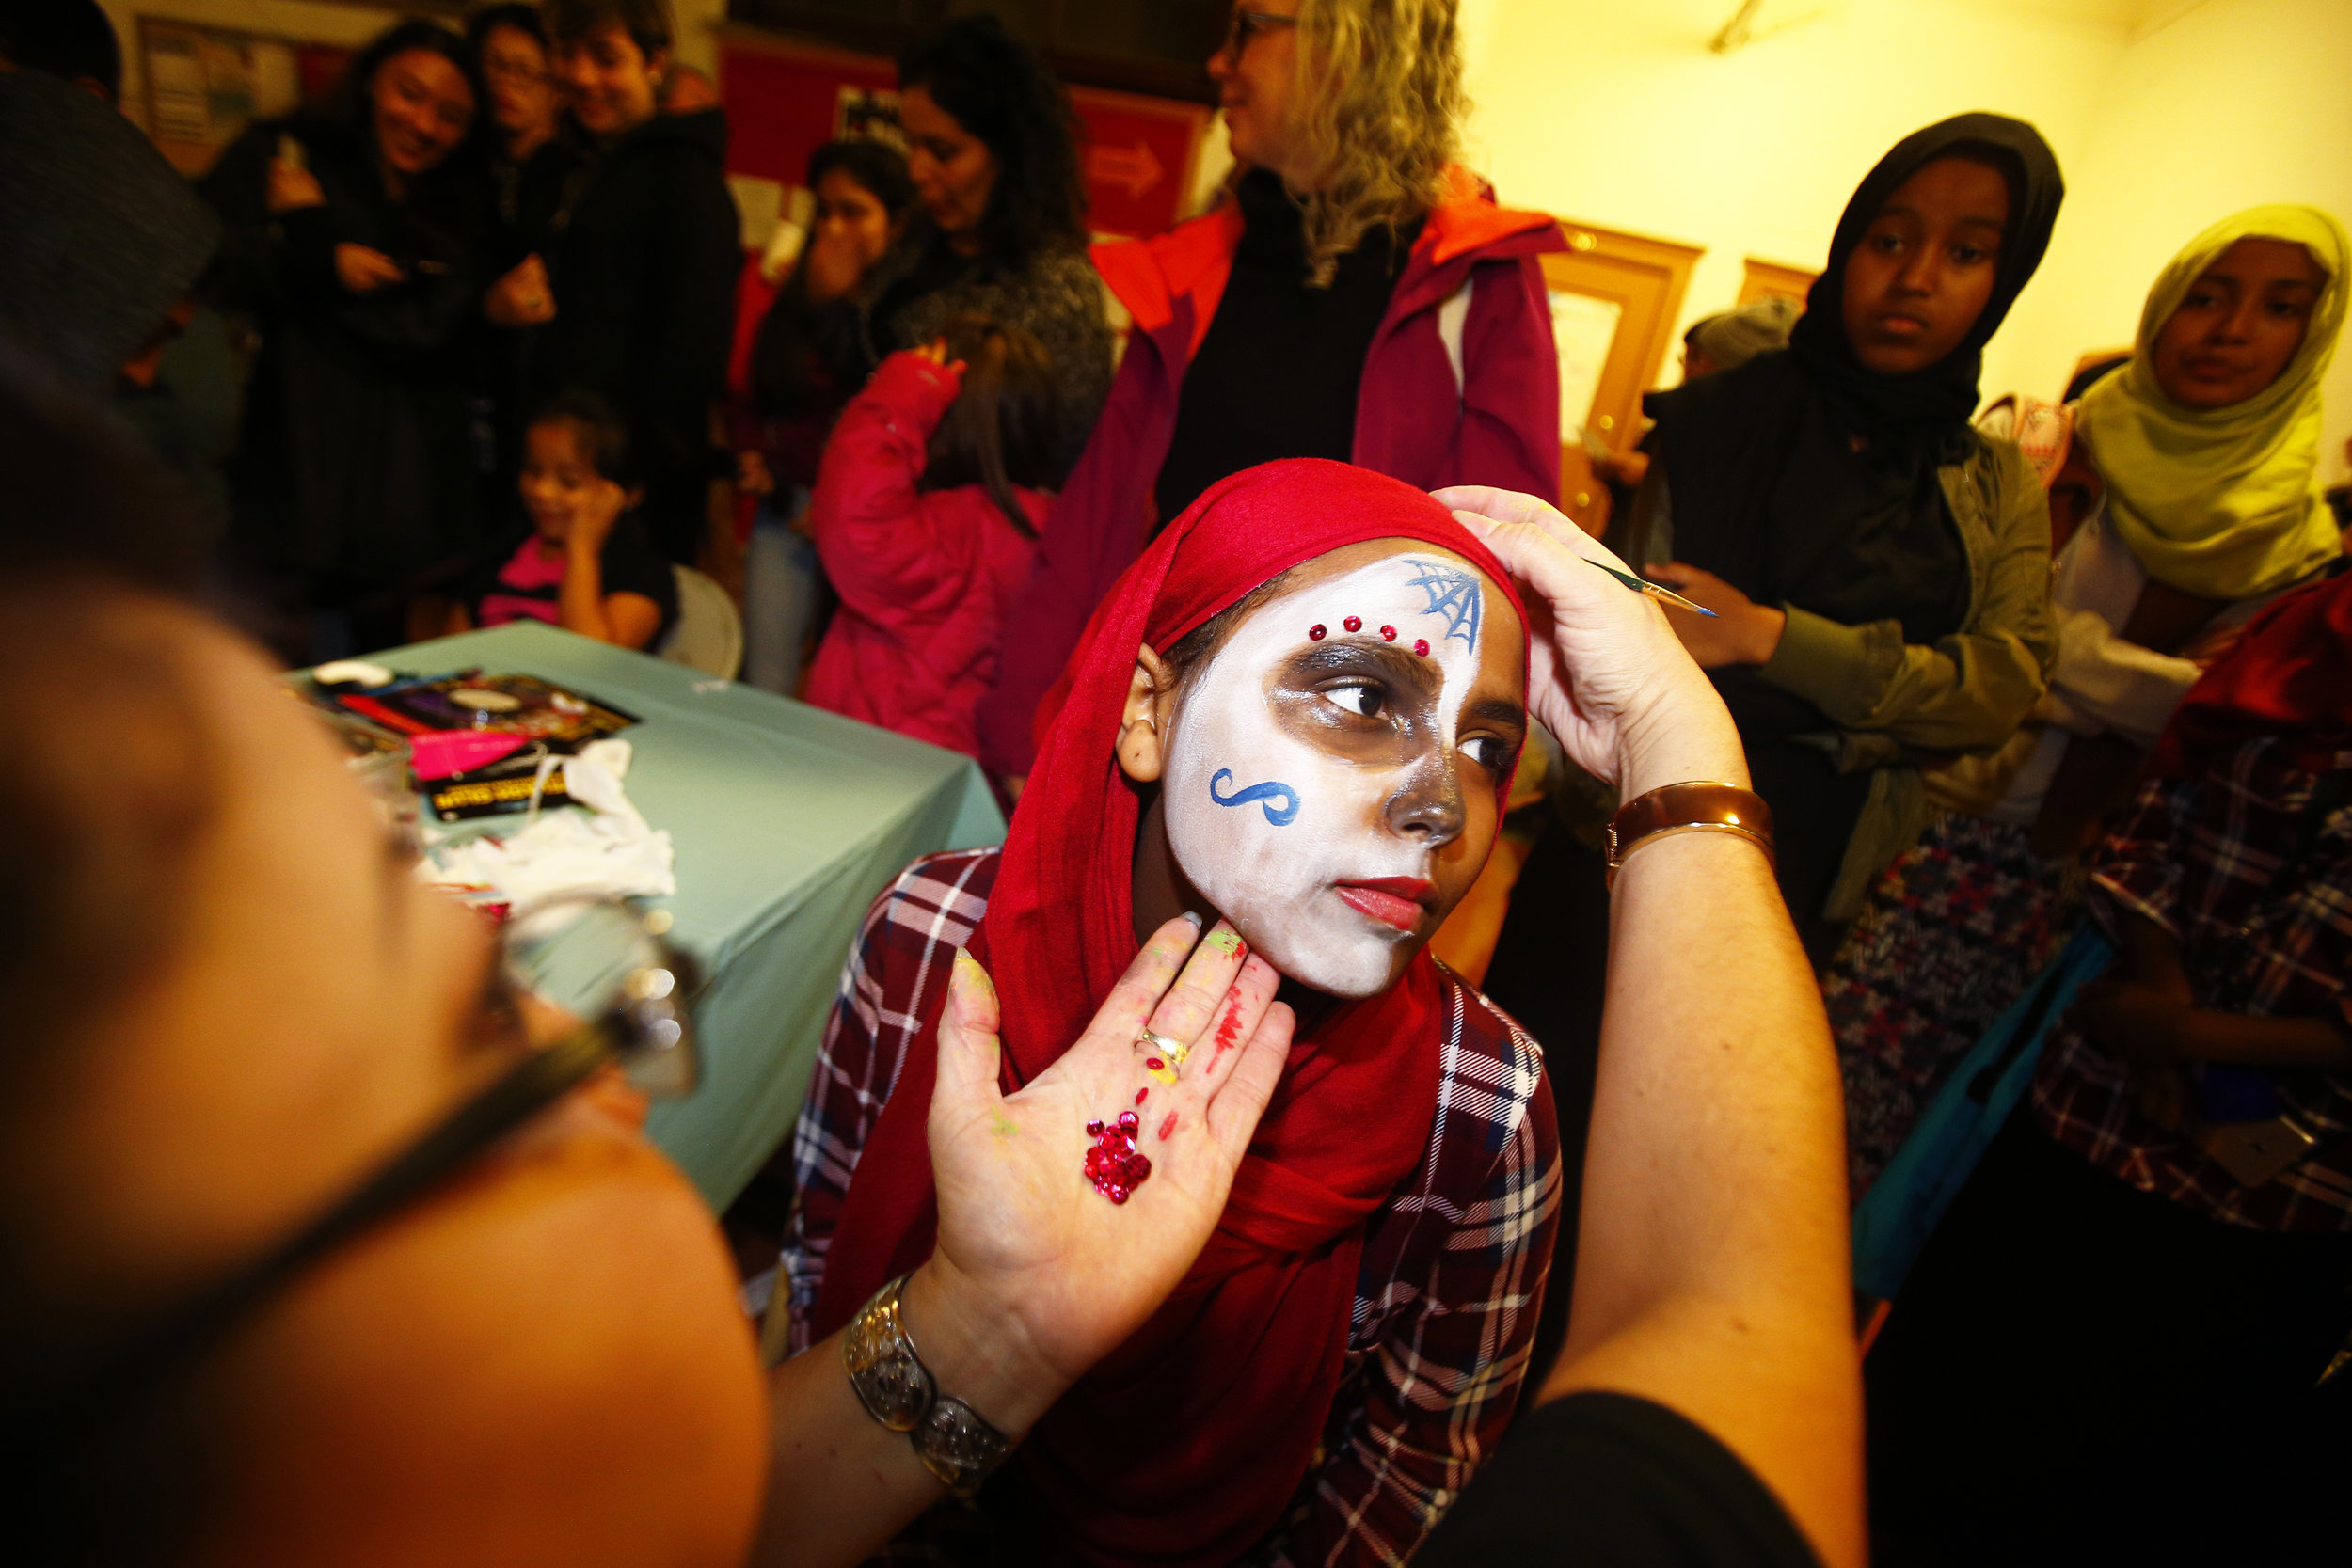 Anita Sharif of South Seattle, gets her face painted by first year artist Raquel Garcia during the 12th annual Dia De Los Muetos celebration held at the El Centro de la Raza in Beacon Hill on Tuesday, November 1, 2016. This year's Day of the Dead theme draws attention to systematic racial inequities and calls on people to exercise their right to vote in honor of those who have lost their lives.